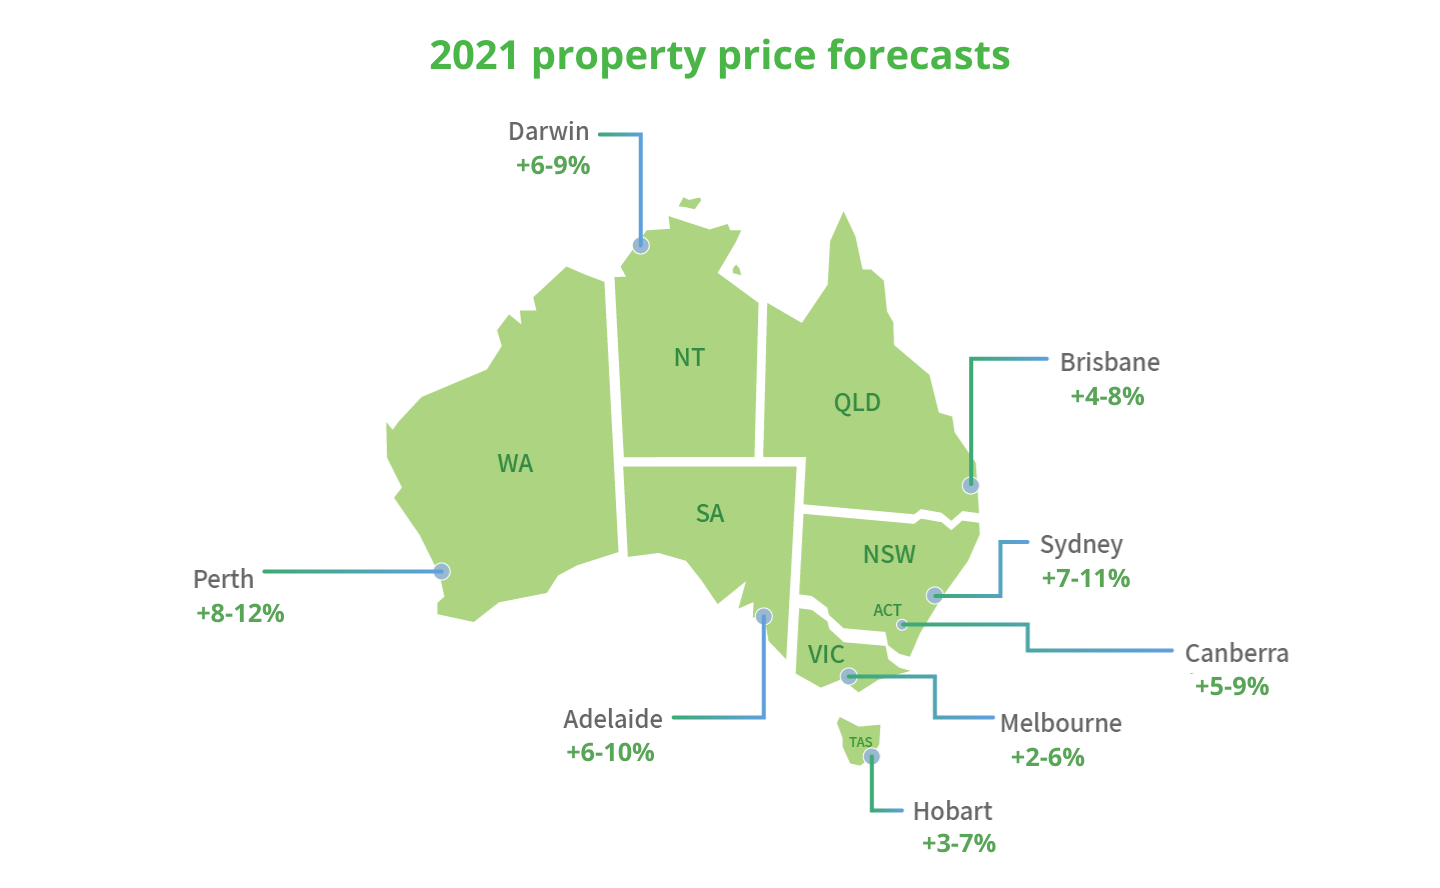 Property price forecasts for 2021, according to SQM